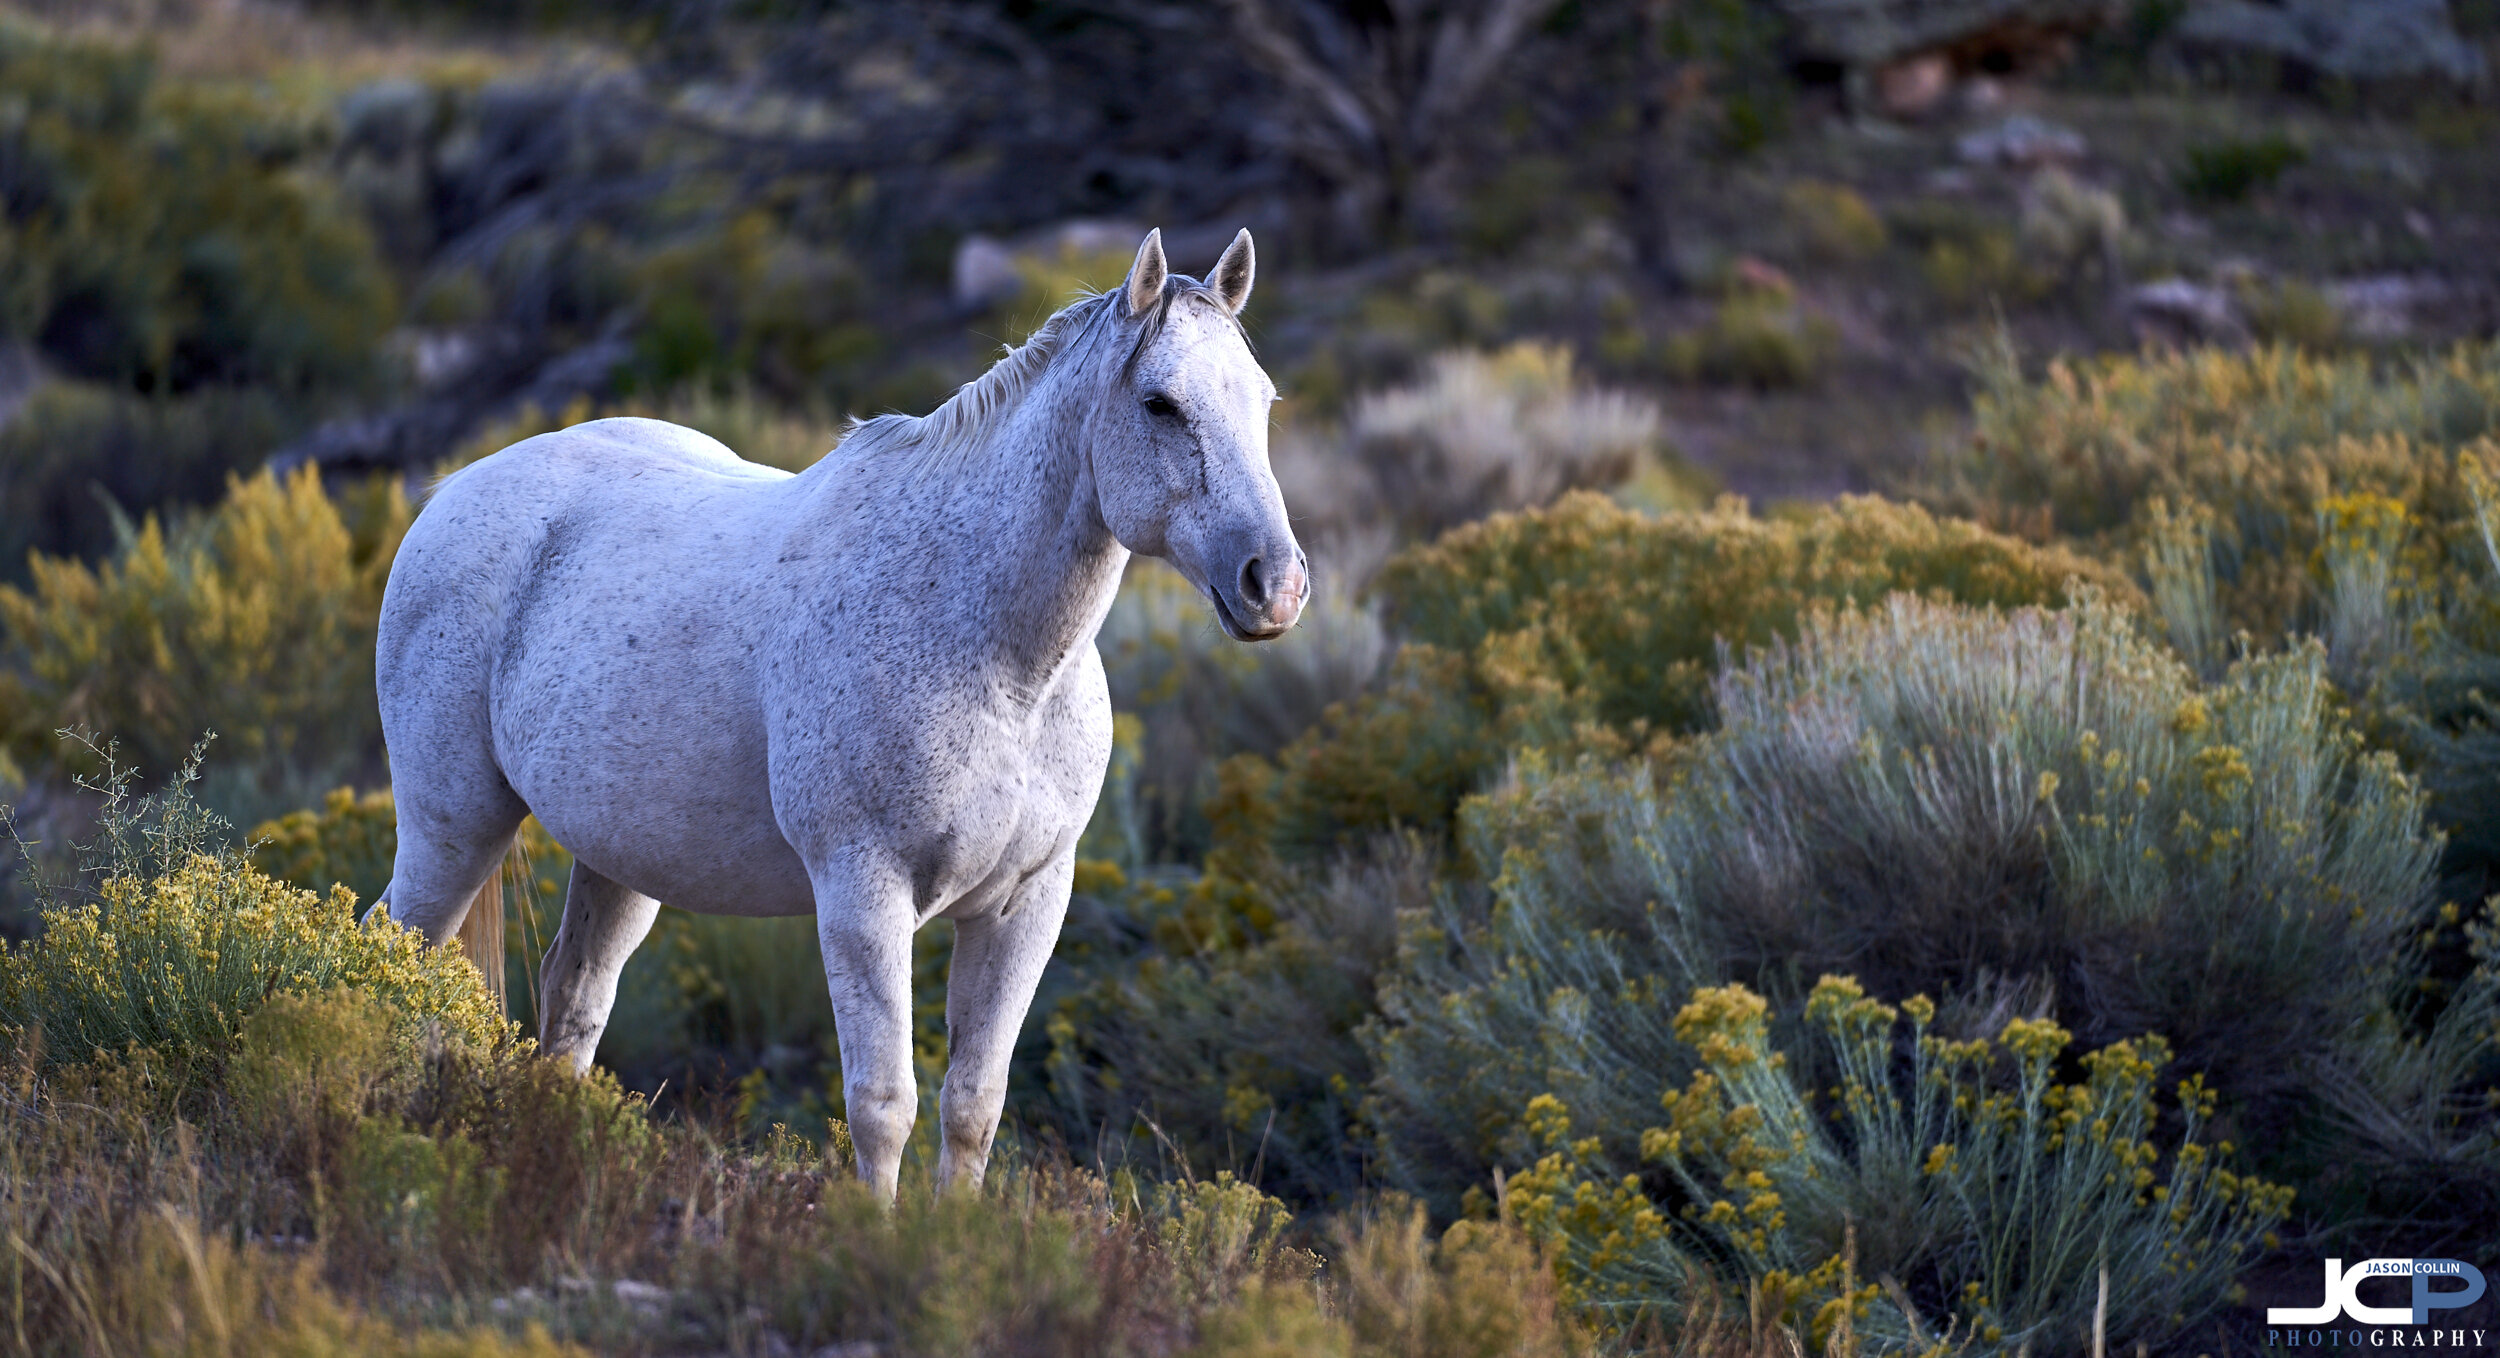 Pale horse in dusk light in New Mexico